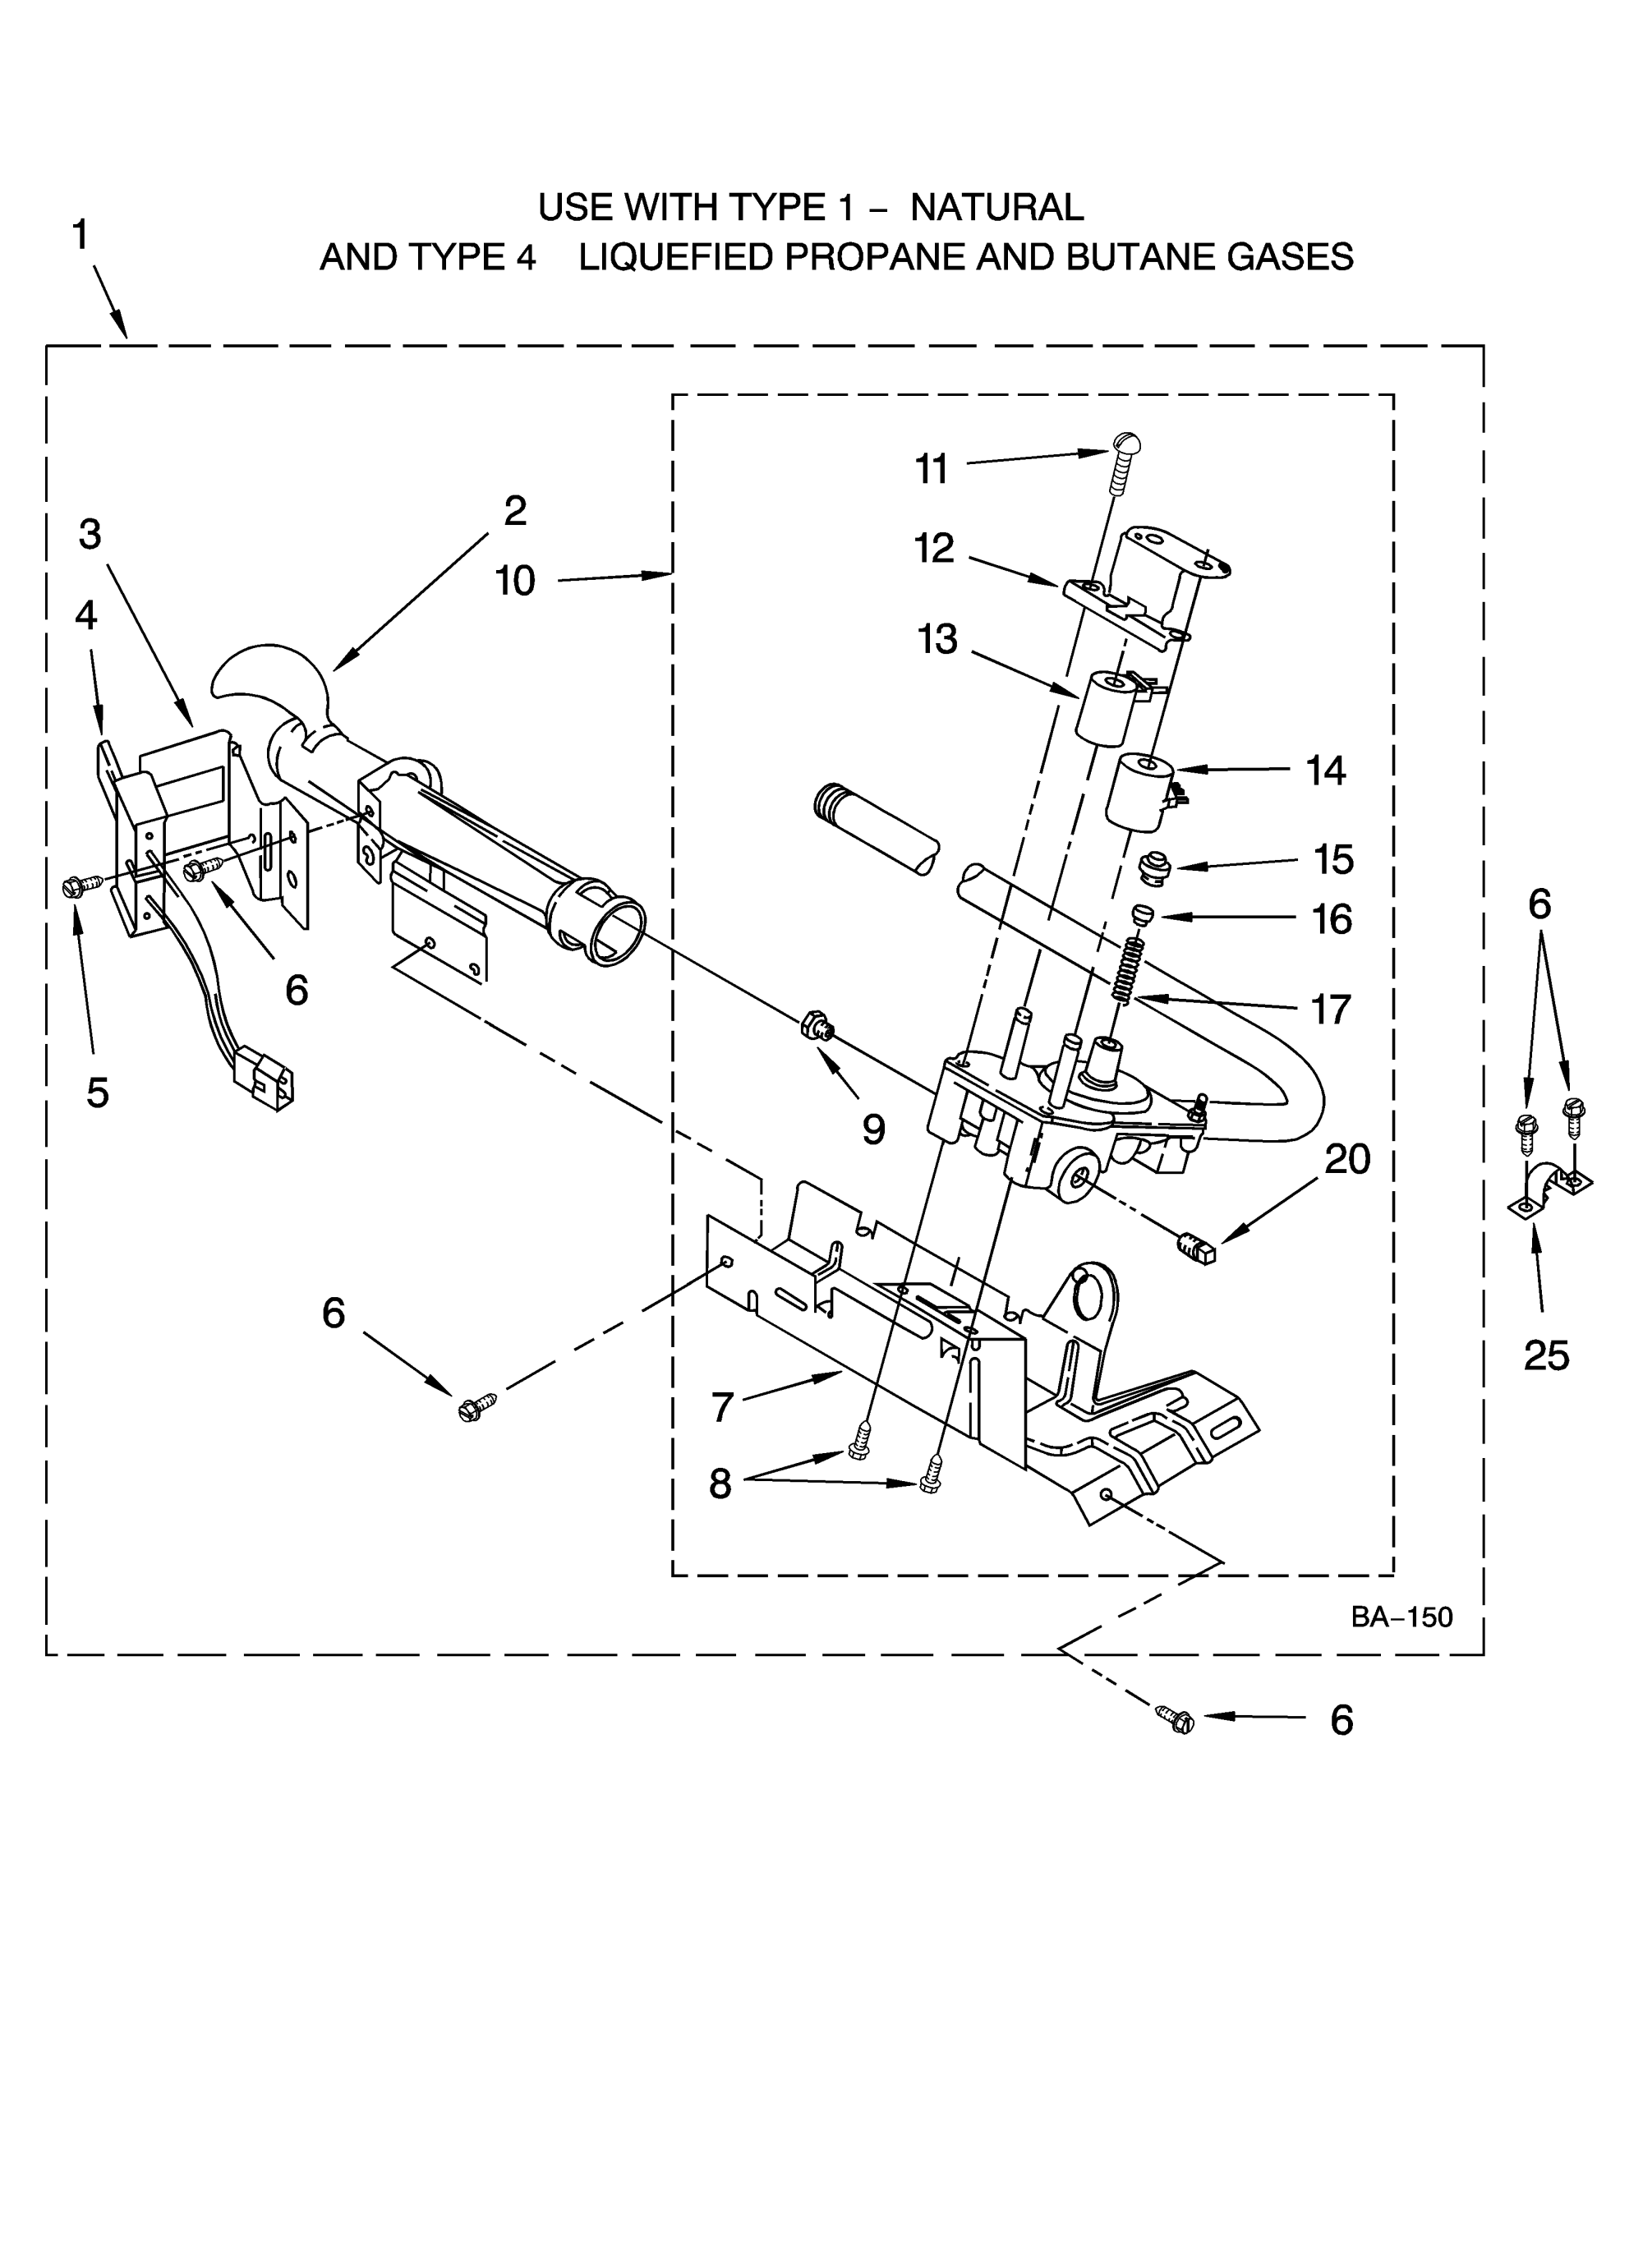 hight resolution of whirlpool wgd5100vq0 8318272 burner assembly optional parts not included diagram